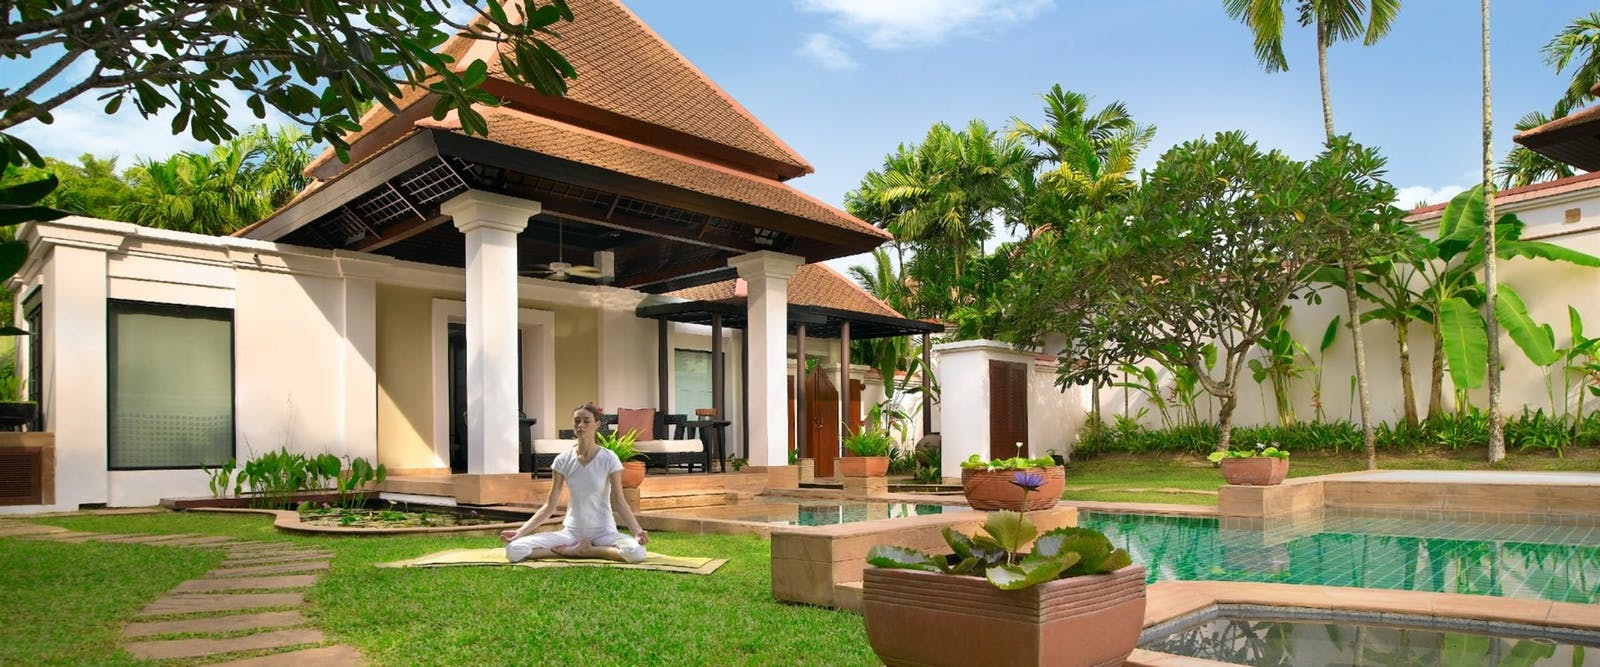 Spa Sanctuary at Banyan Tree Phuket, Thailand